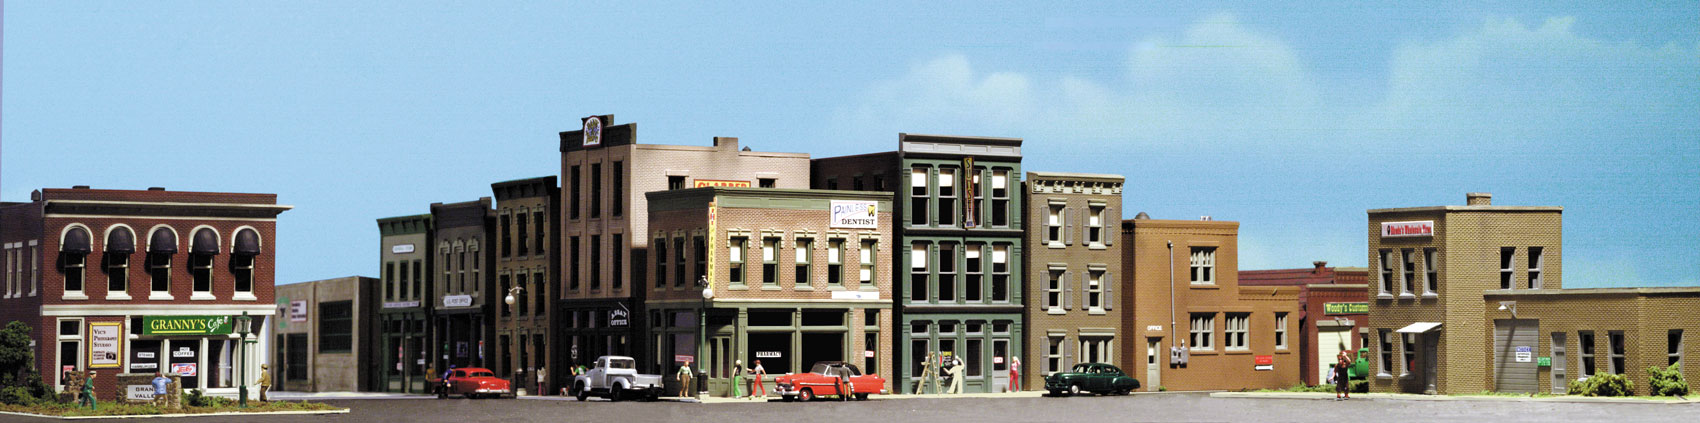 Woodland Scenics City & Industry Building Set™ - HO Scale Kits